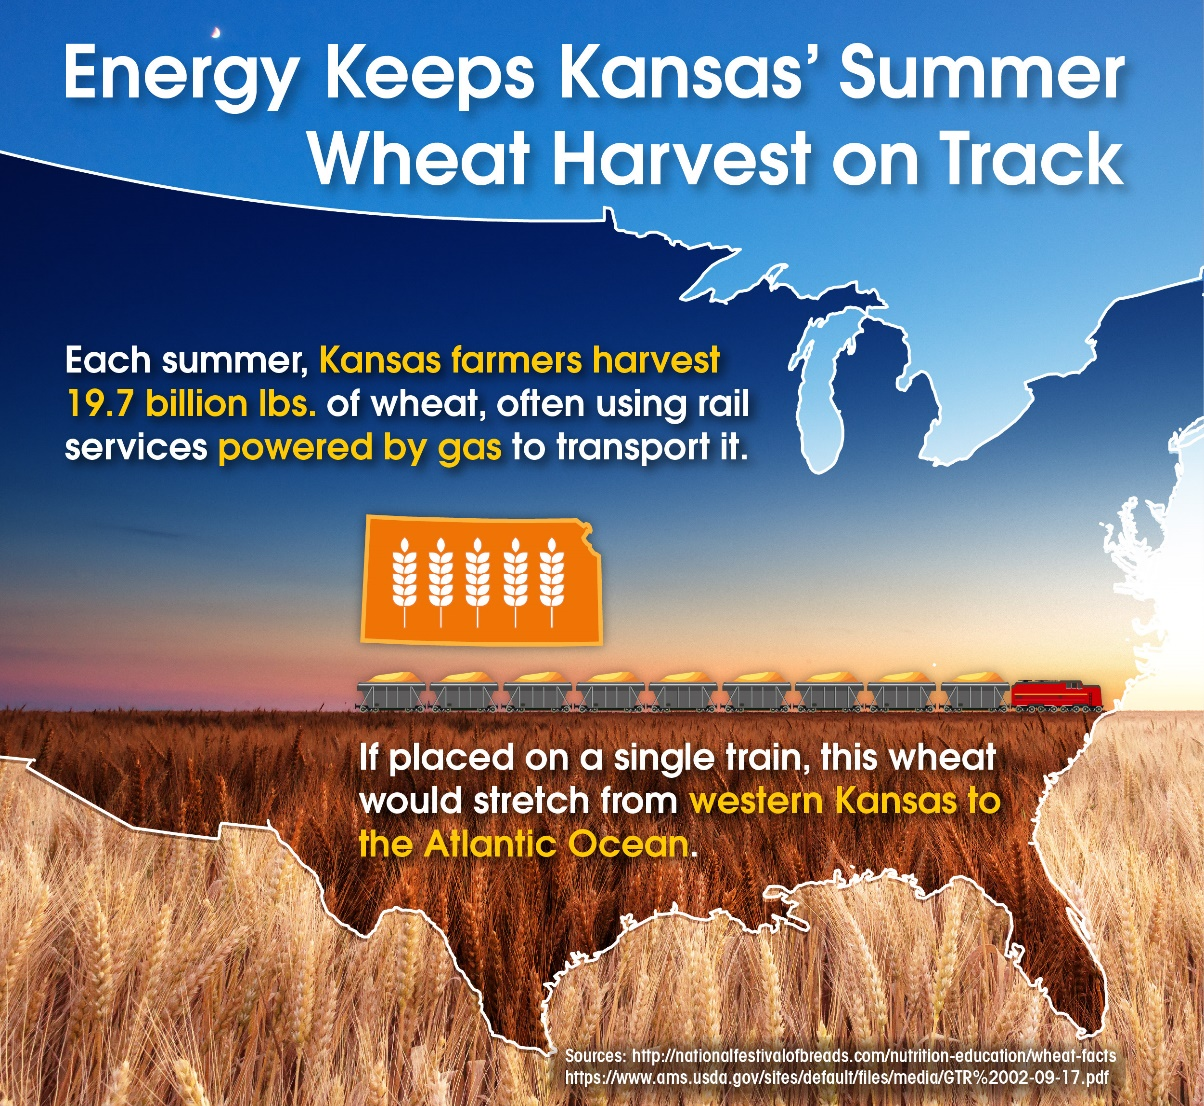 Infographic: Energy Keeps Wheat Harvest On Track